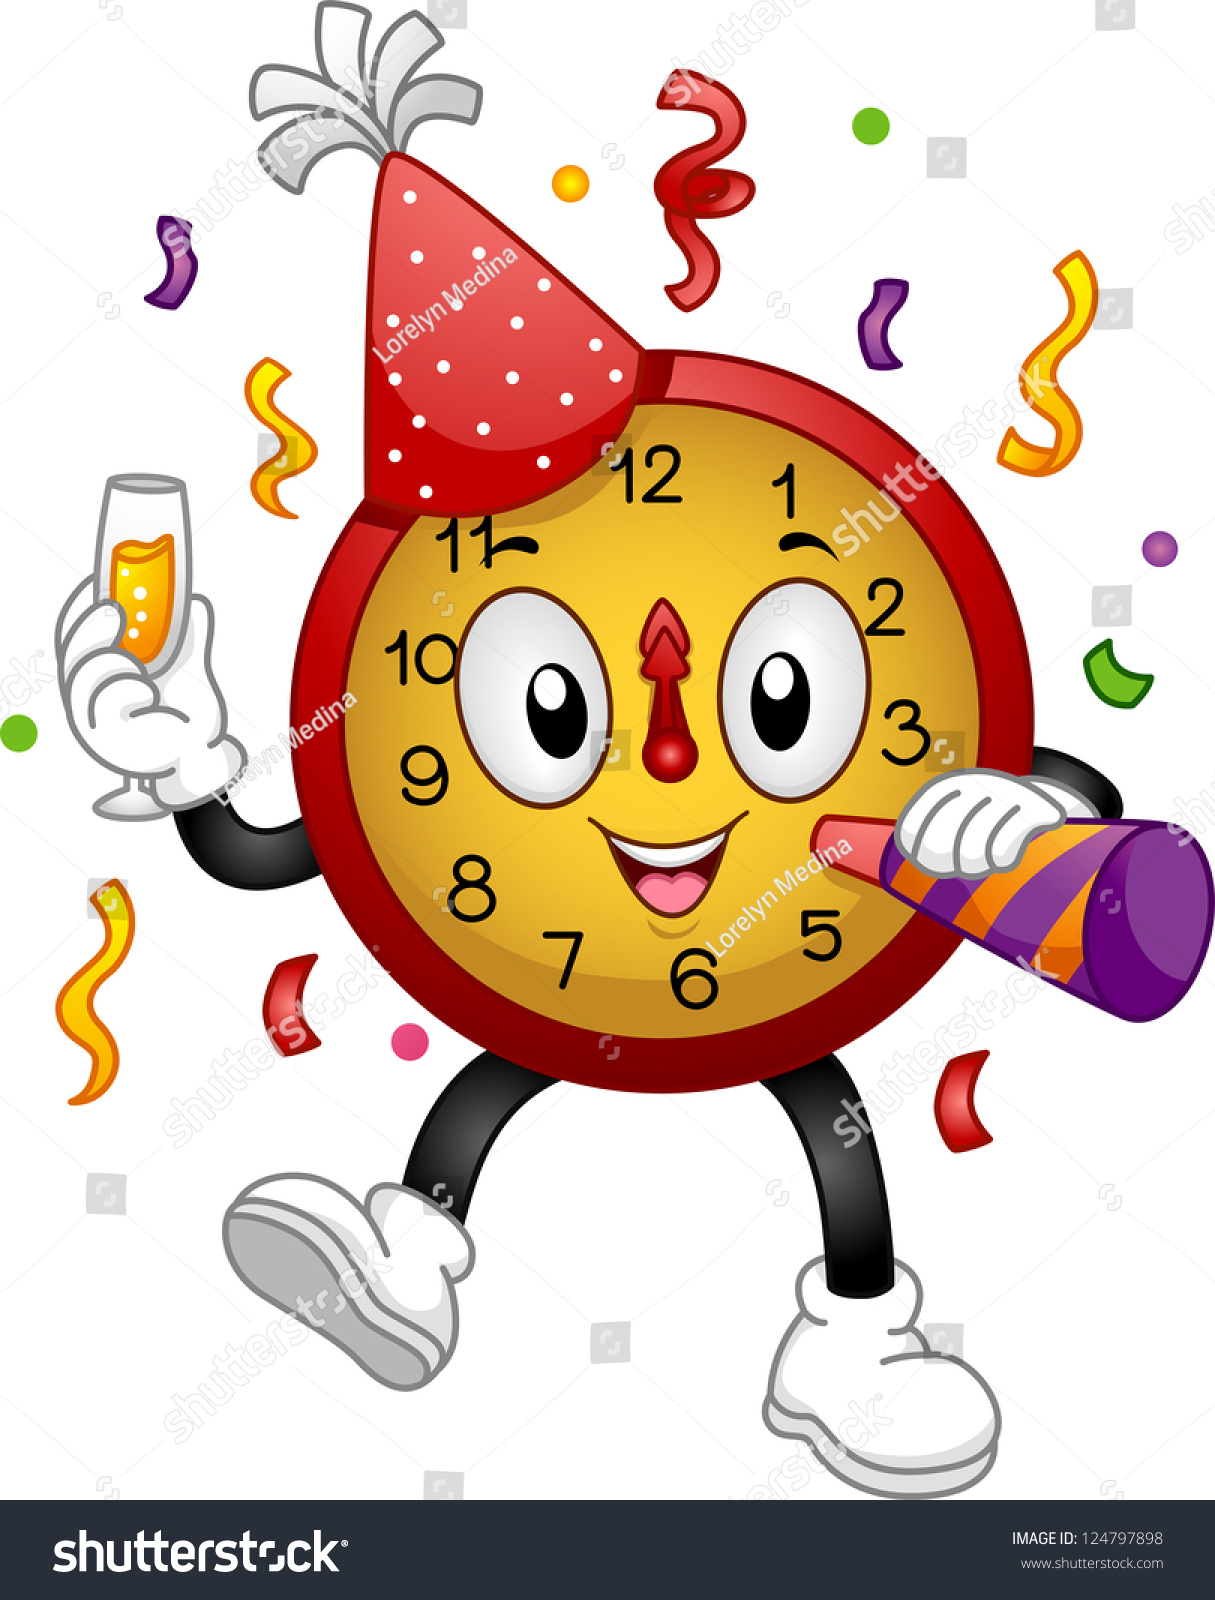 illustration of a clock mascot wearing a party hat and using a noise maker to celebrate